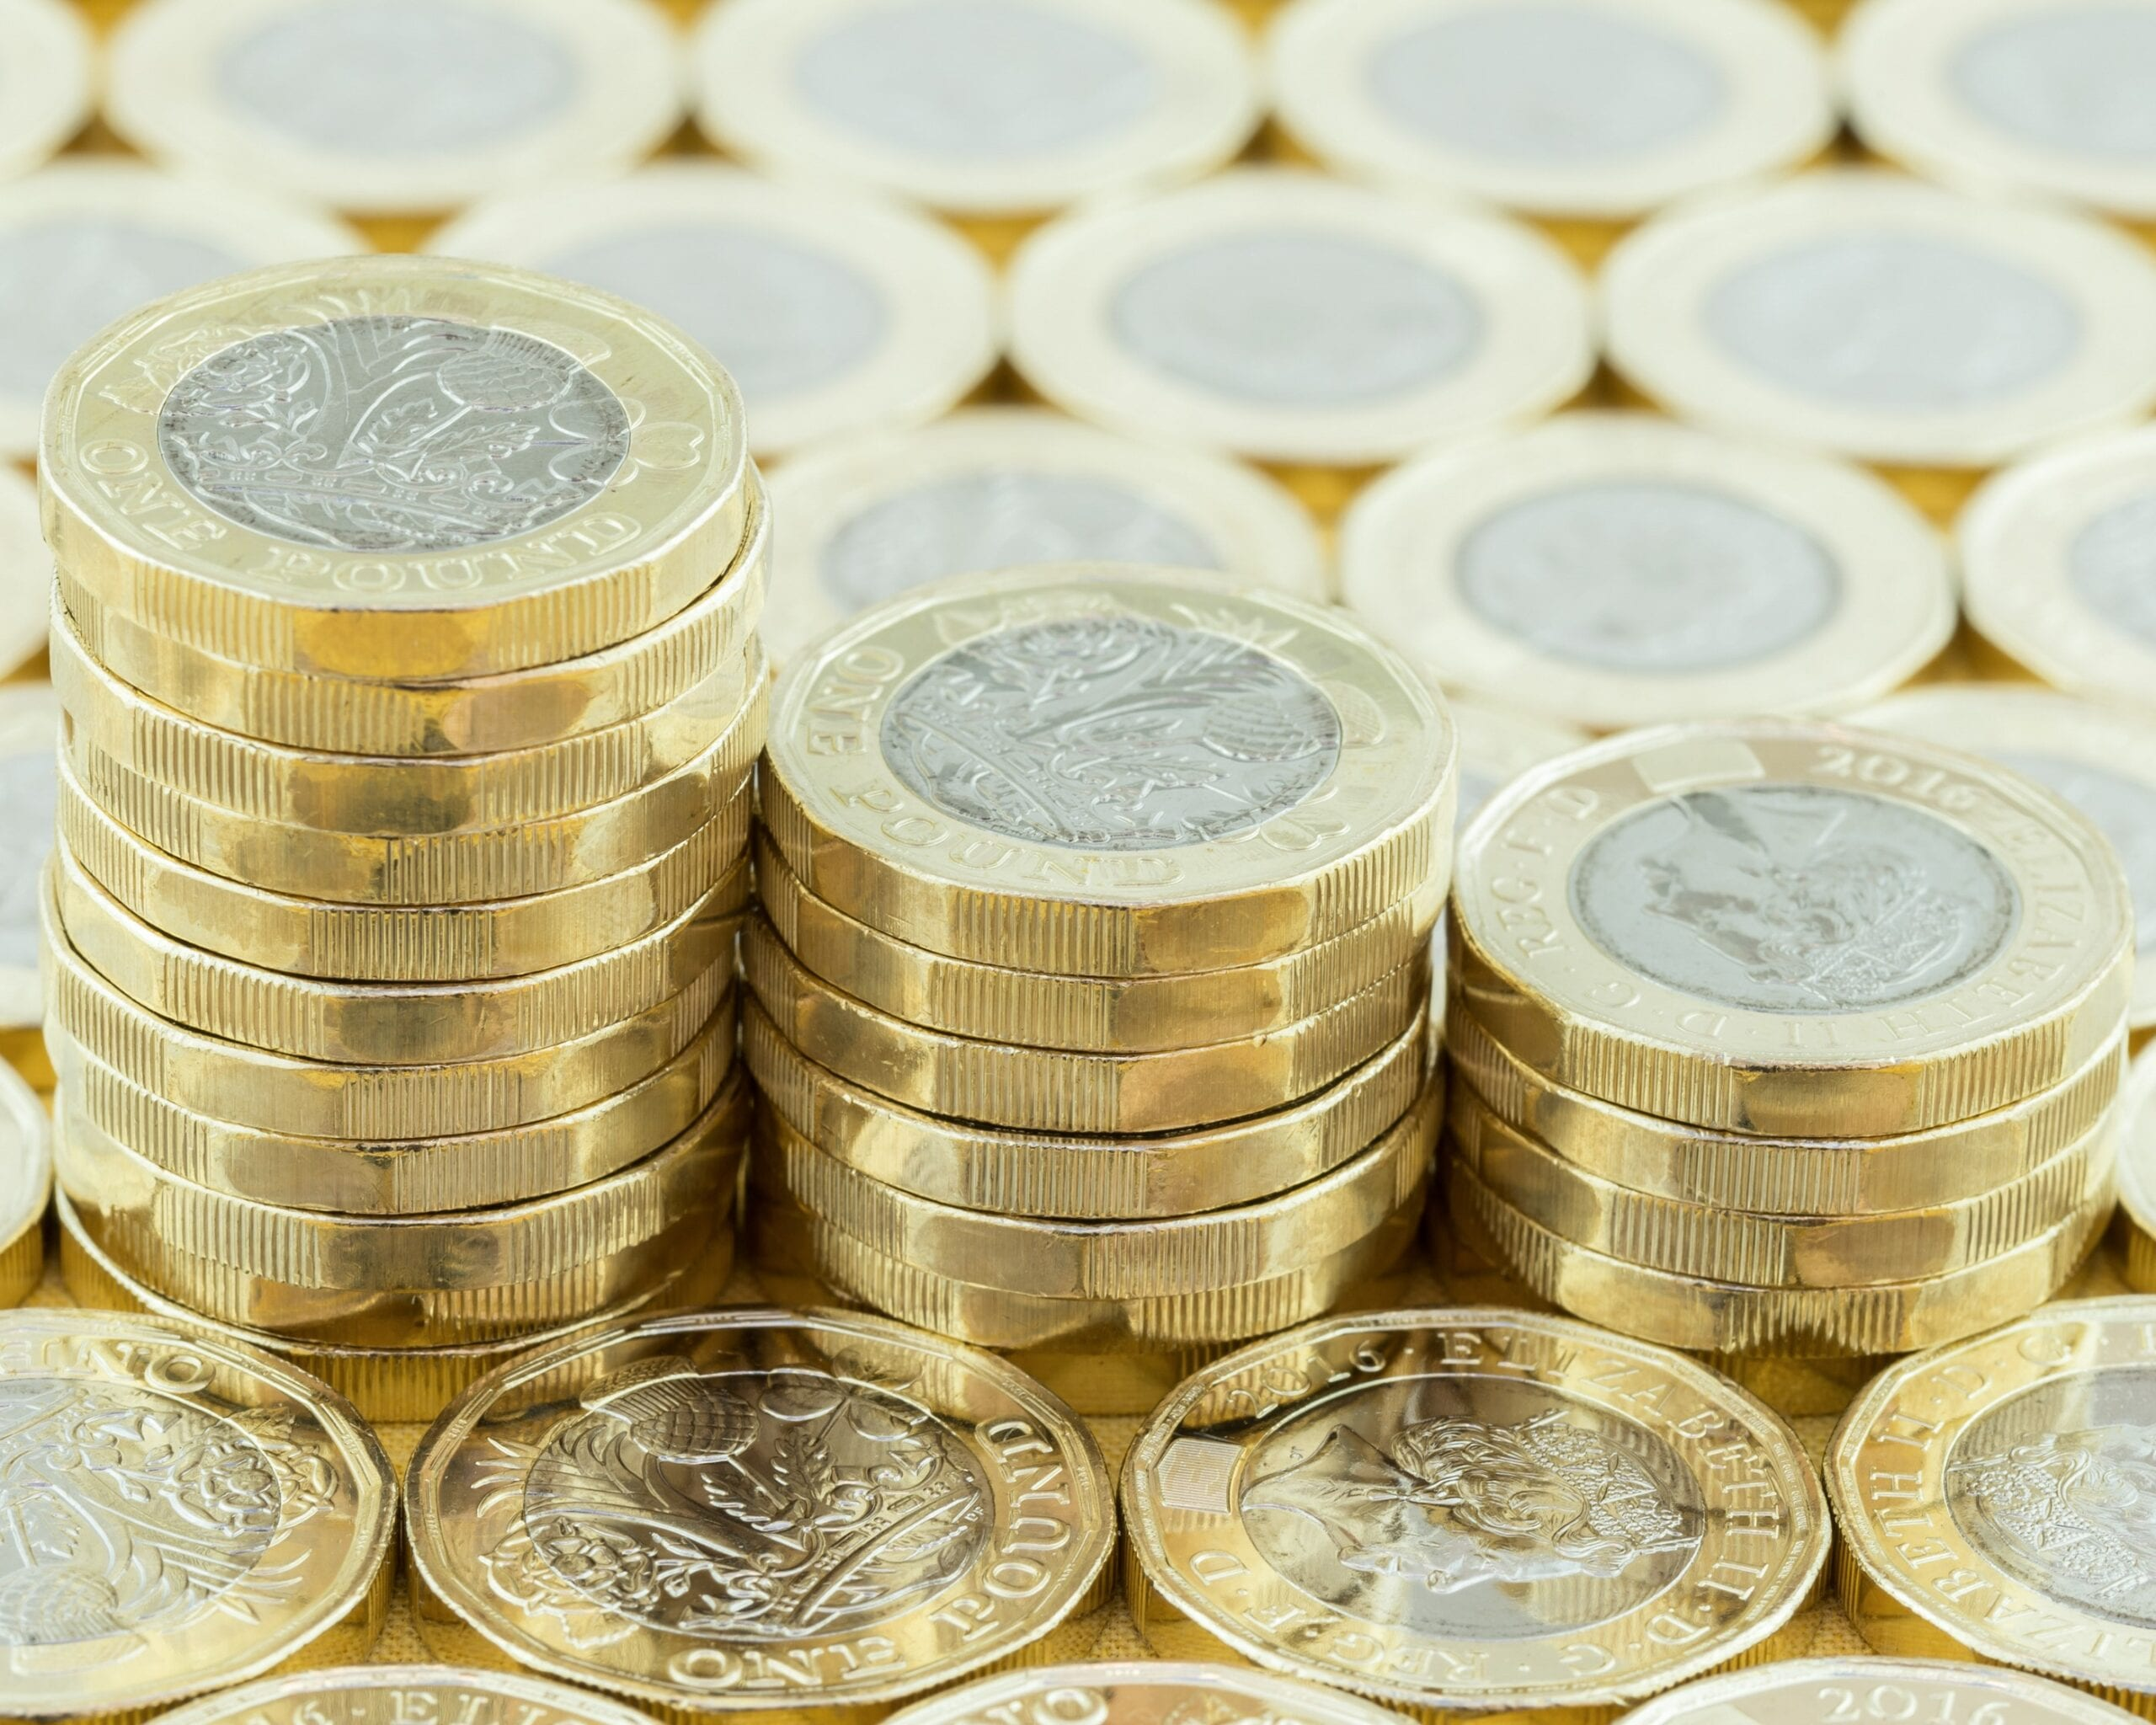 Stacks of pound coins